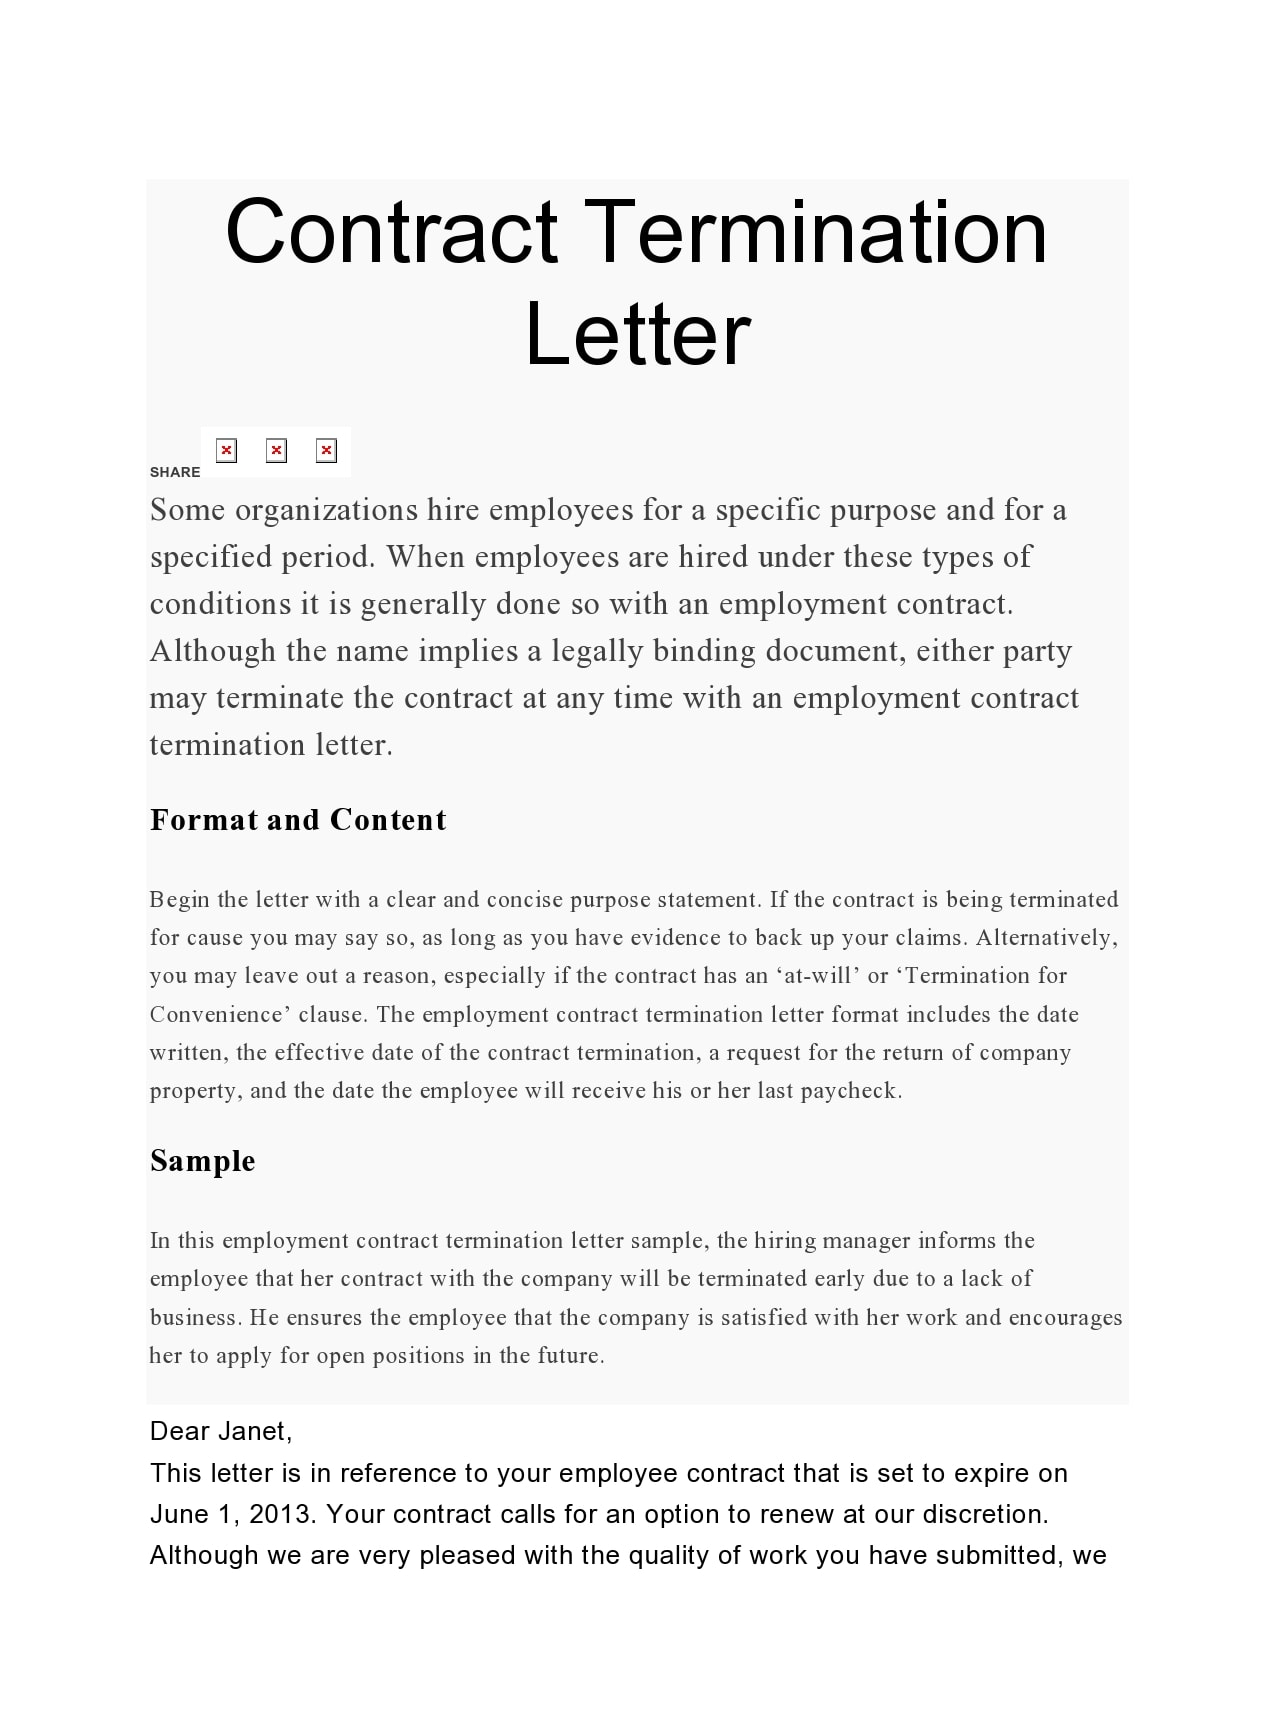 Breach Of Contract Letter Sample from templatearchive.com